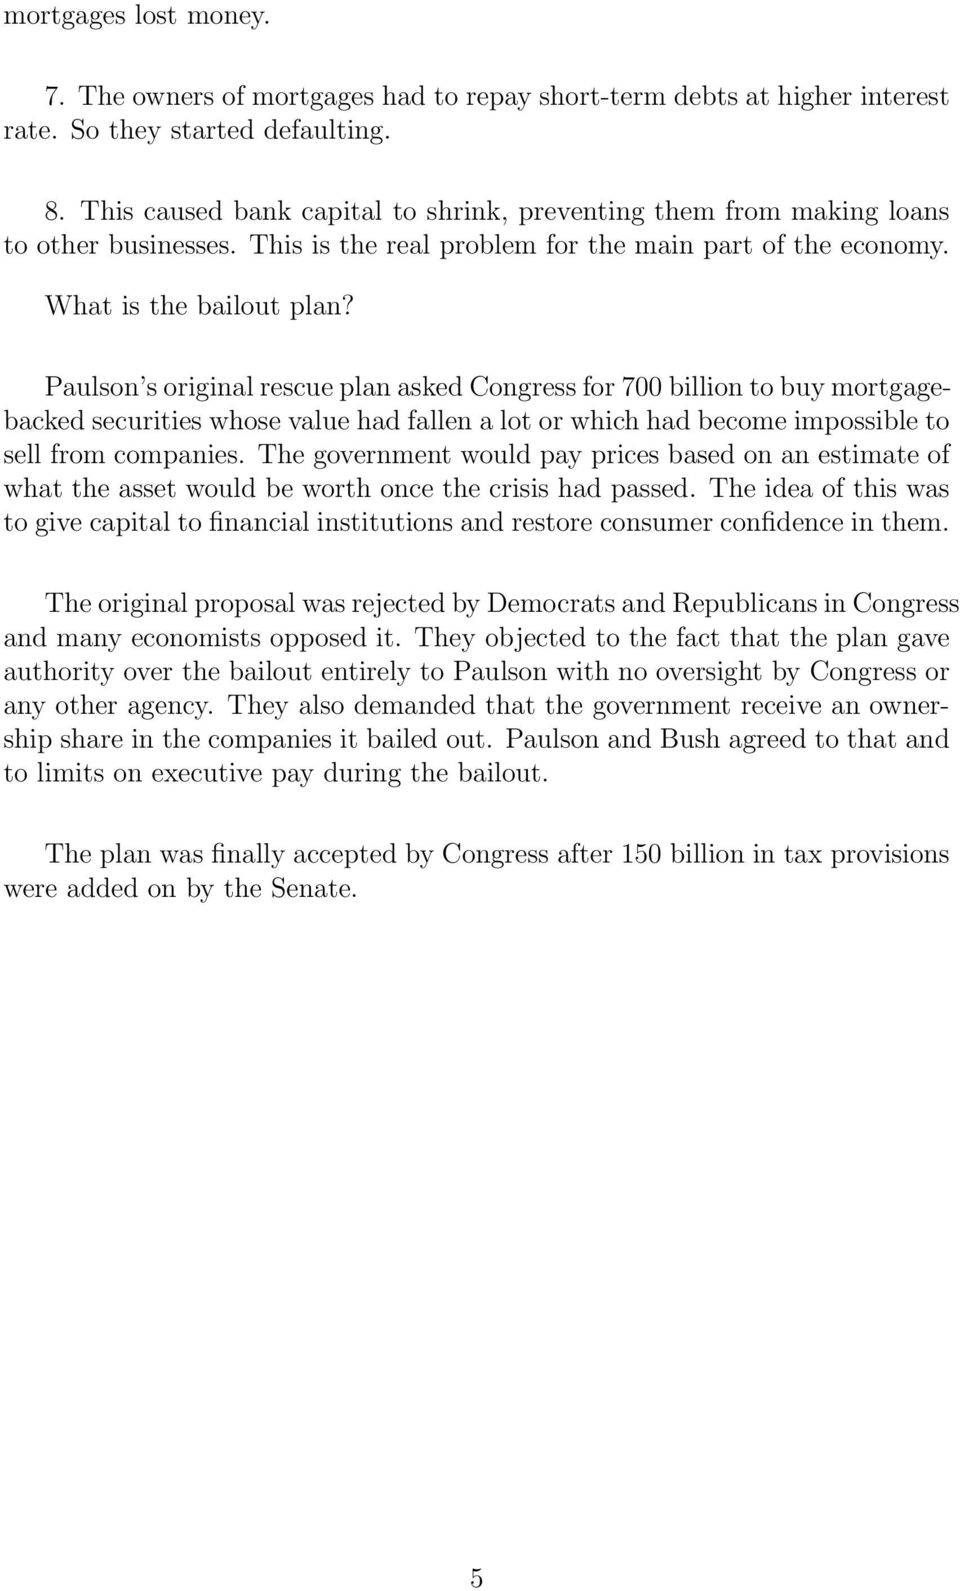 Paulson s original rescue plan asked Congress for 700 billion to buy mortgagebacked securities whose value had fallen a lot or which had become impossible to sell from companies.